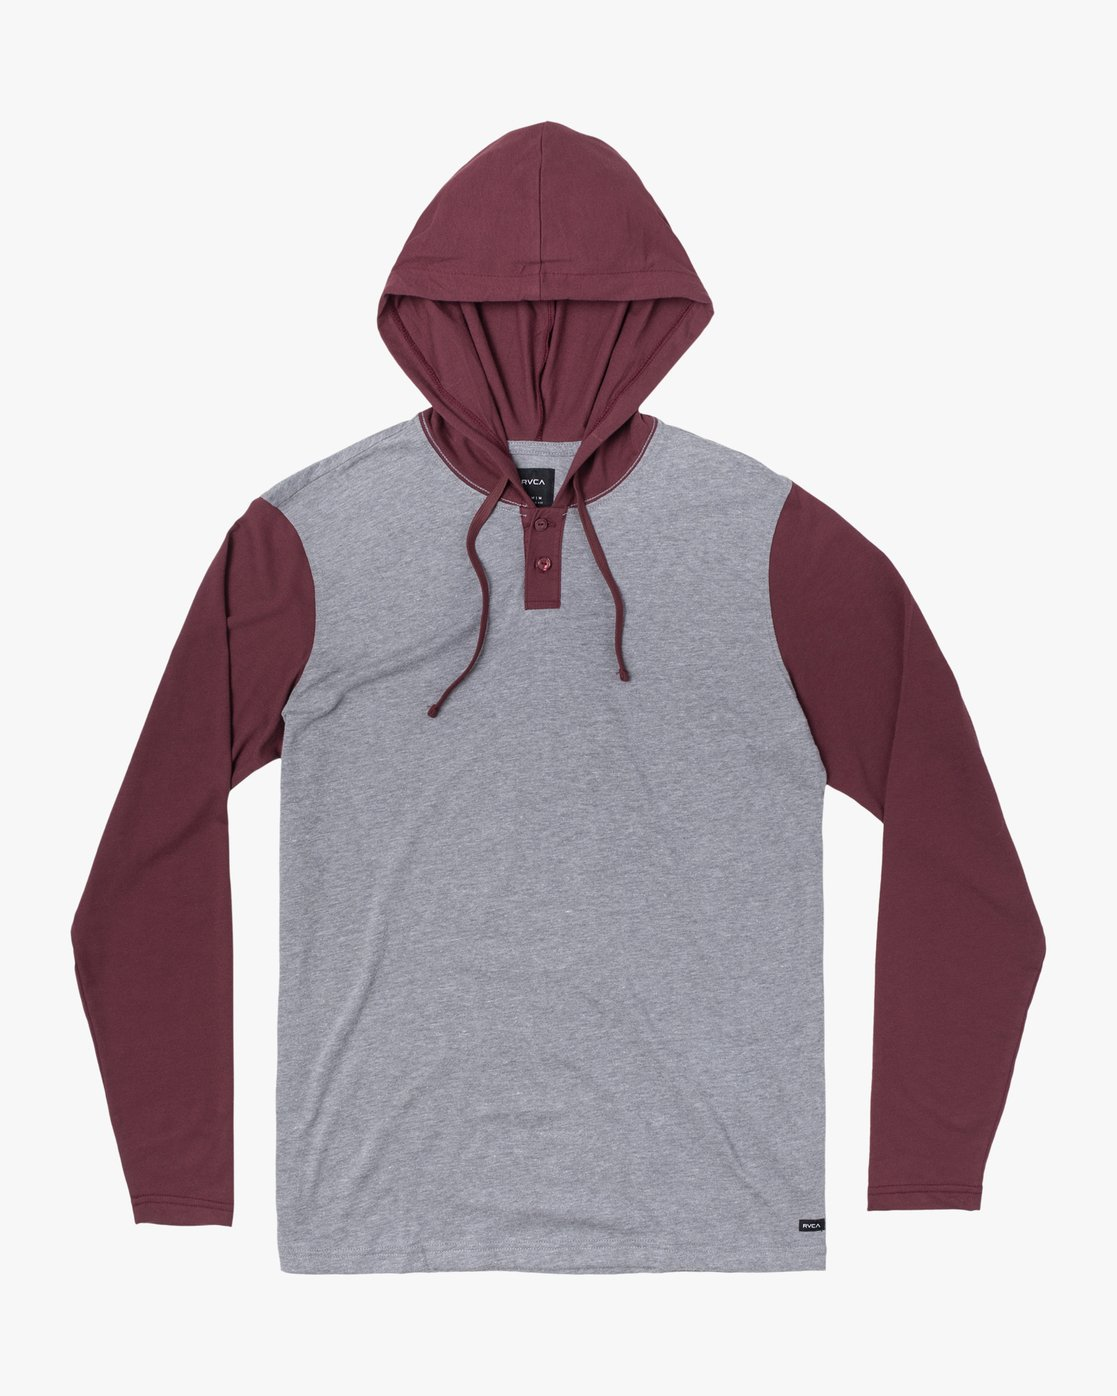 0 PICK UP II HOODIE Red M9593RPU RVCA